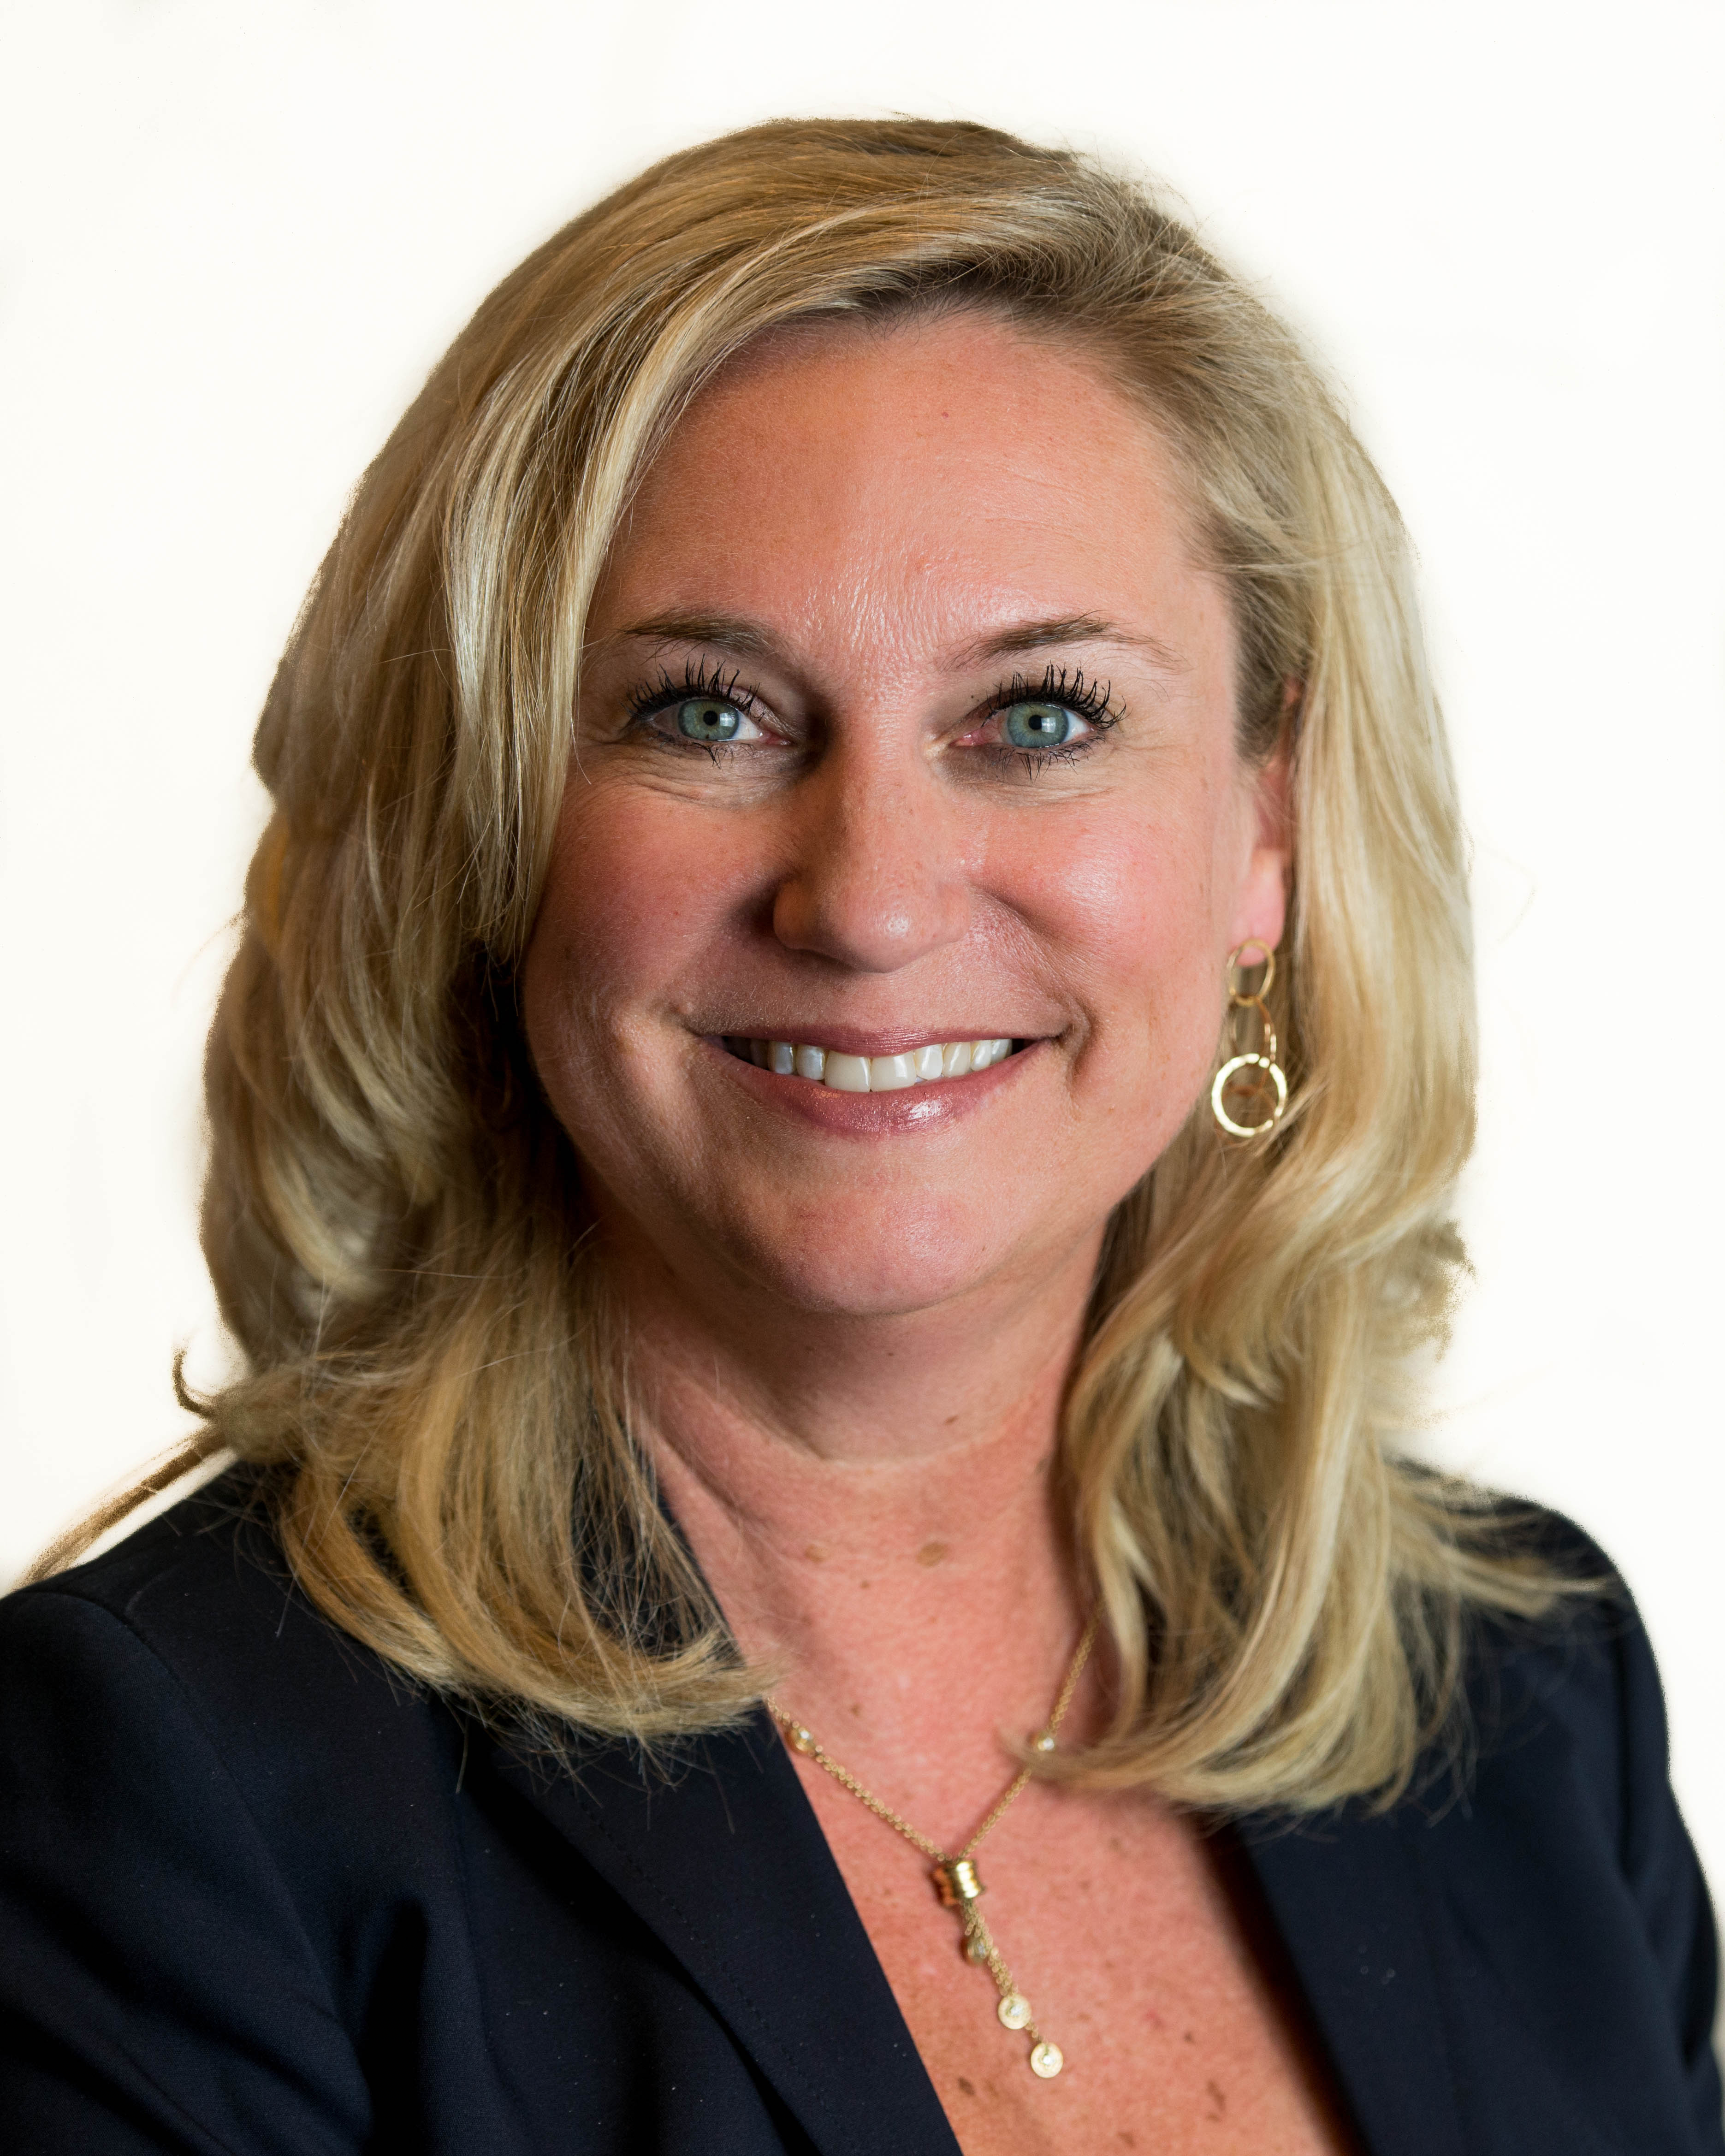 Alison Whitney whitney bouck joins whitepages board of directors | business